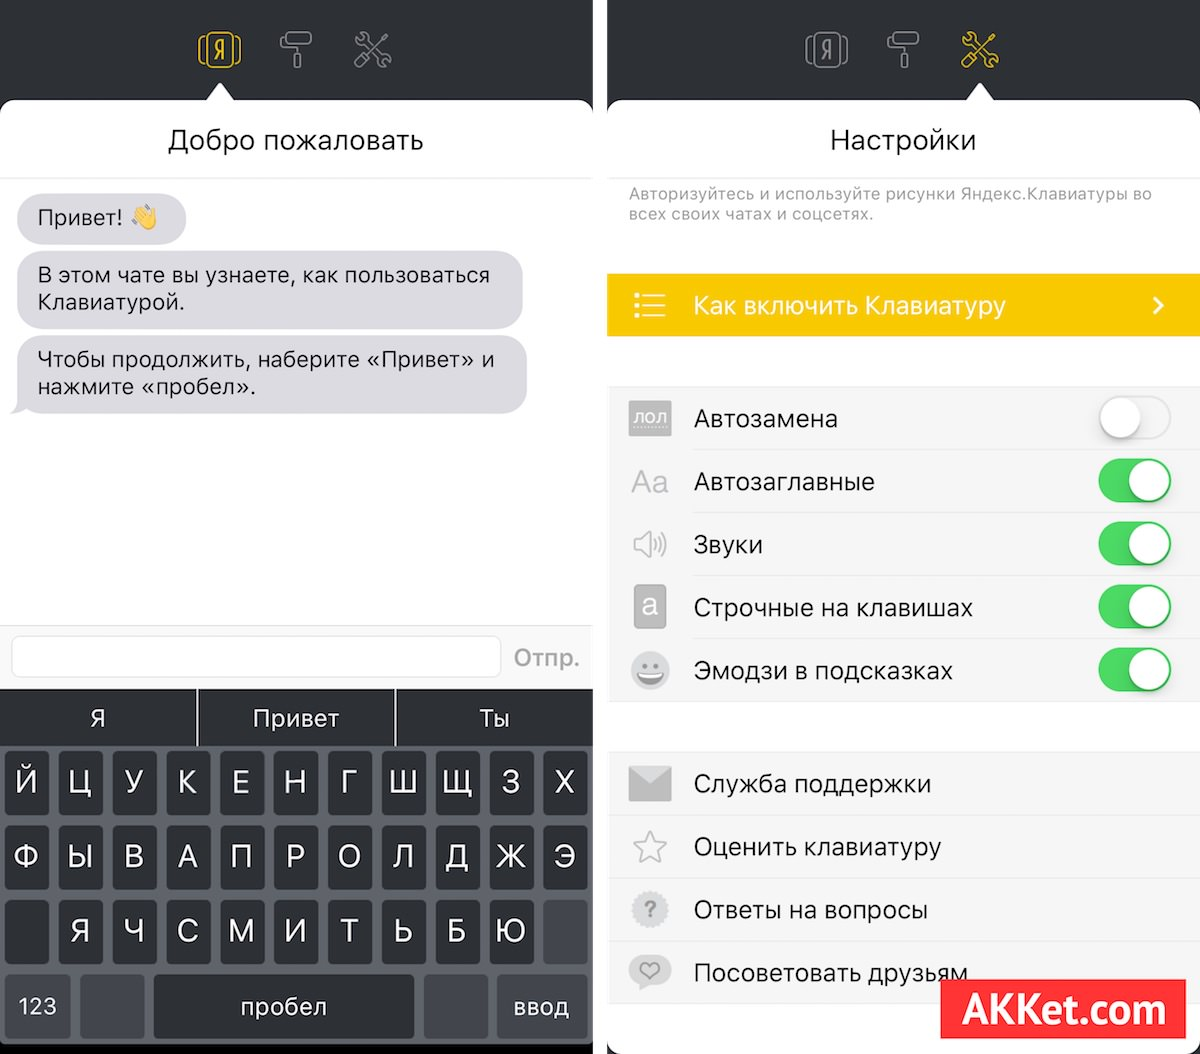 Яндекс.Клавиатура Apple iOS iPhone iPad Ipod Touch iOS 8 iOS 9 Download App Store keyboard russia 2